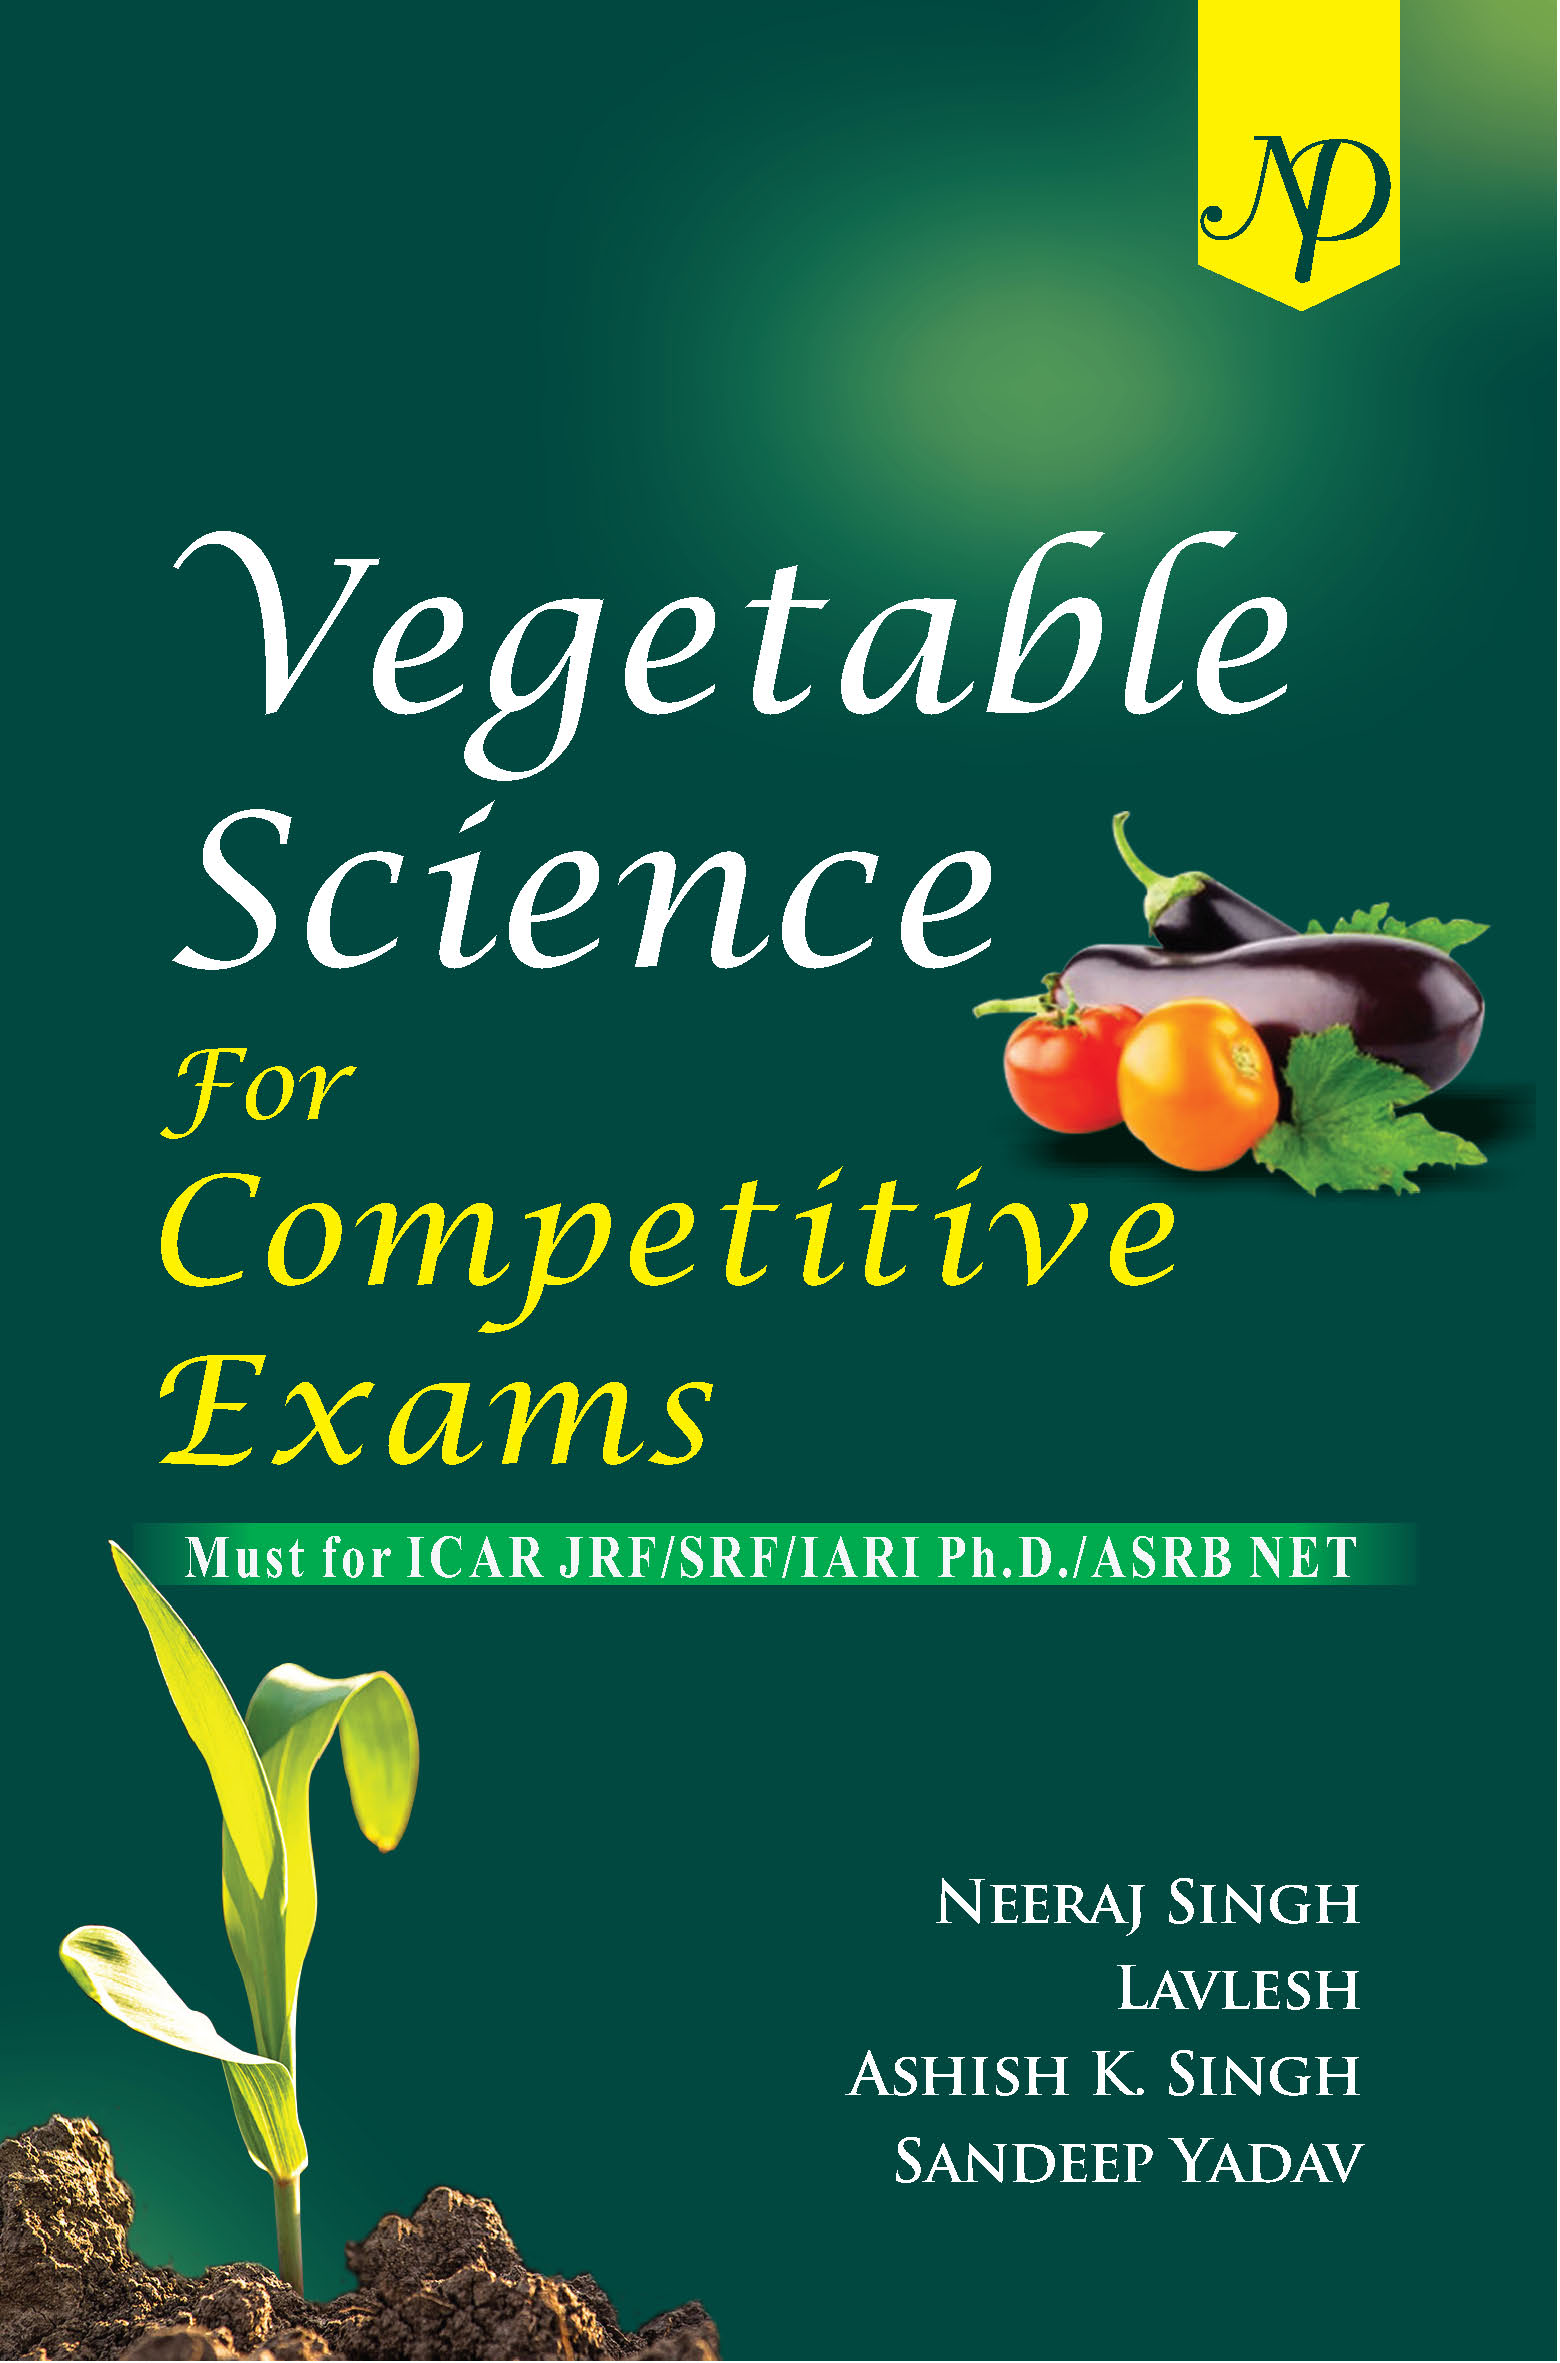 Vegetable science for competative exam.jpg